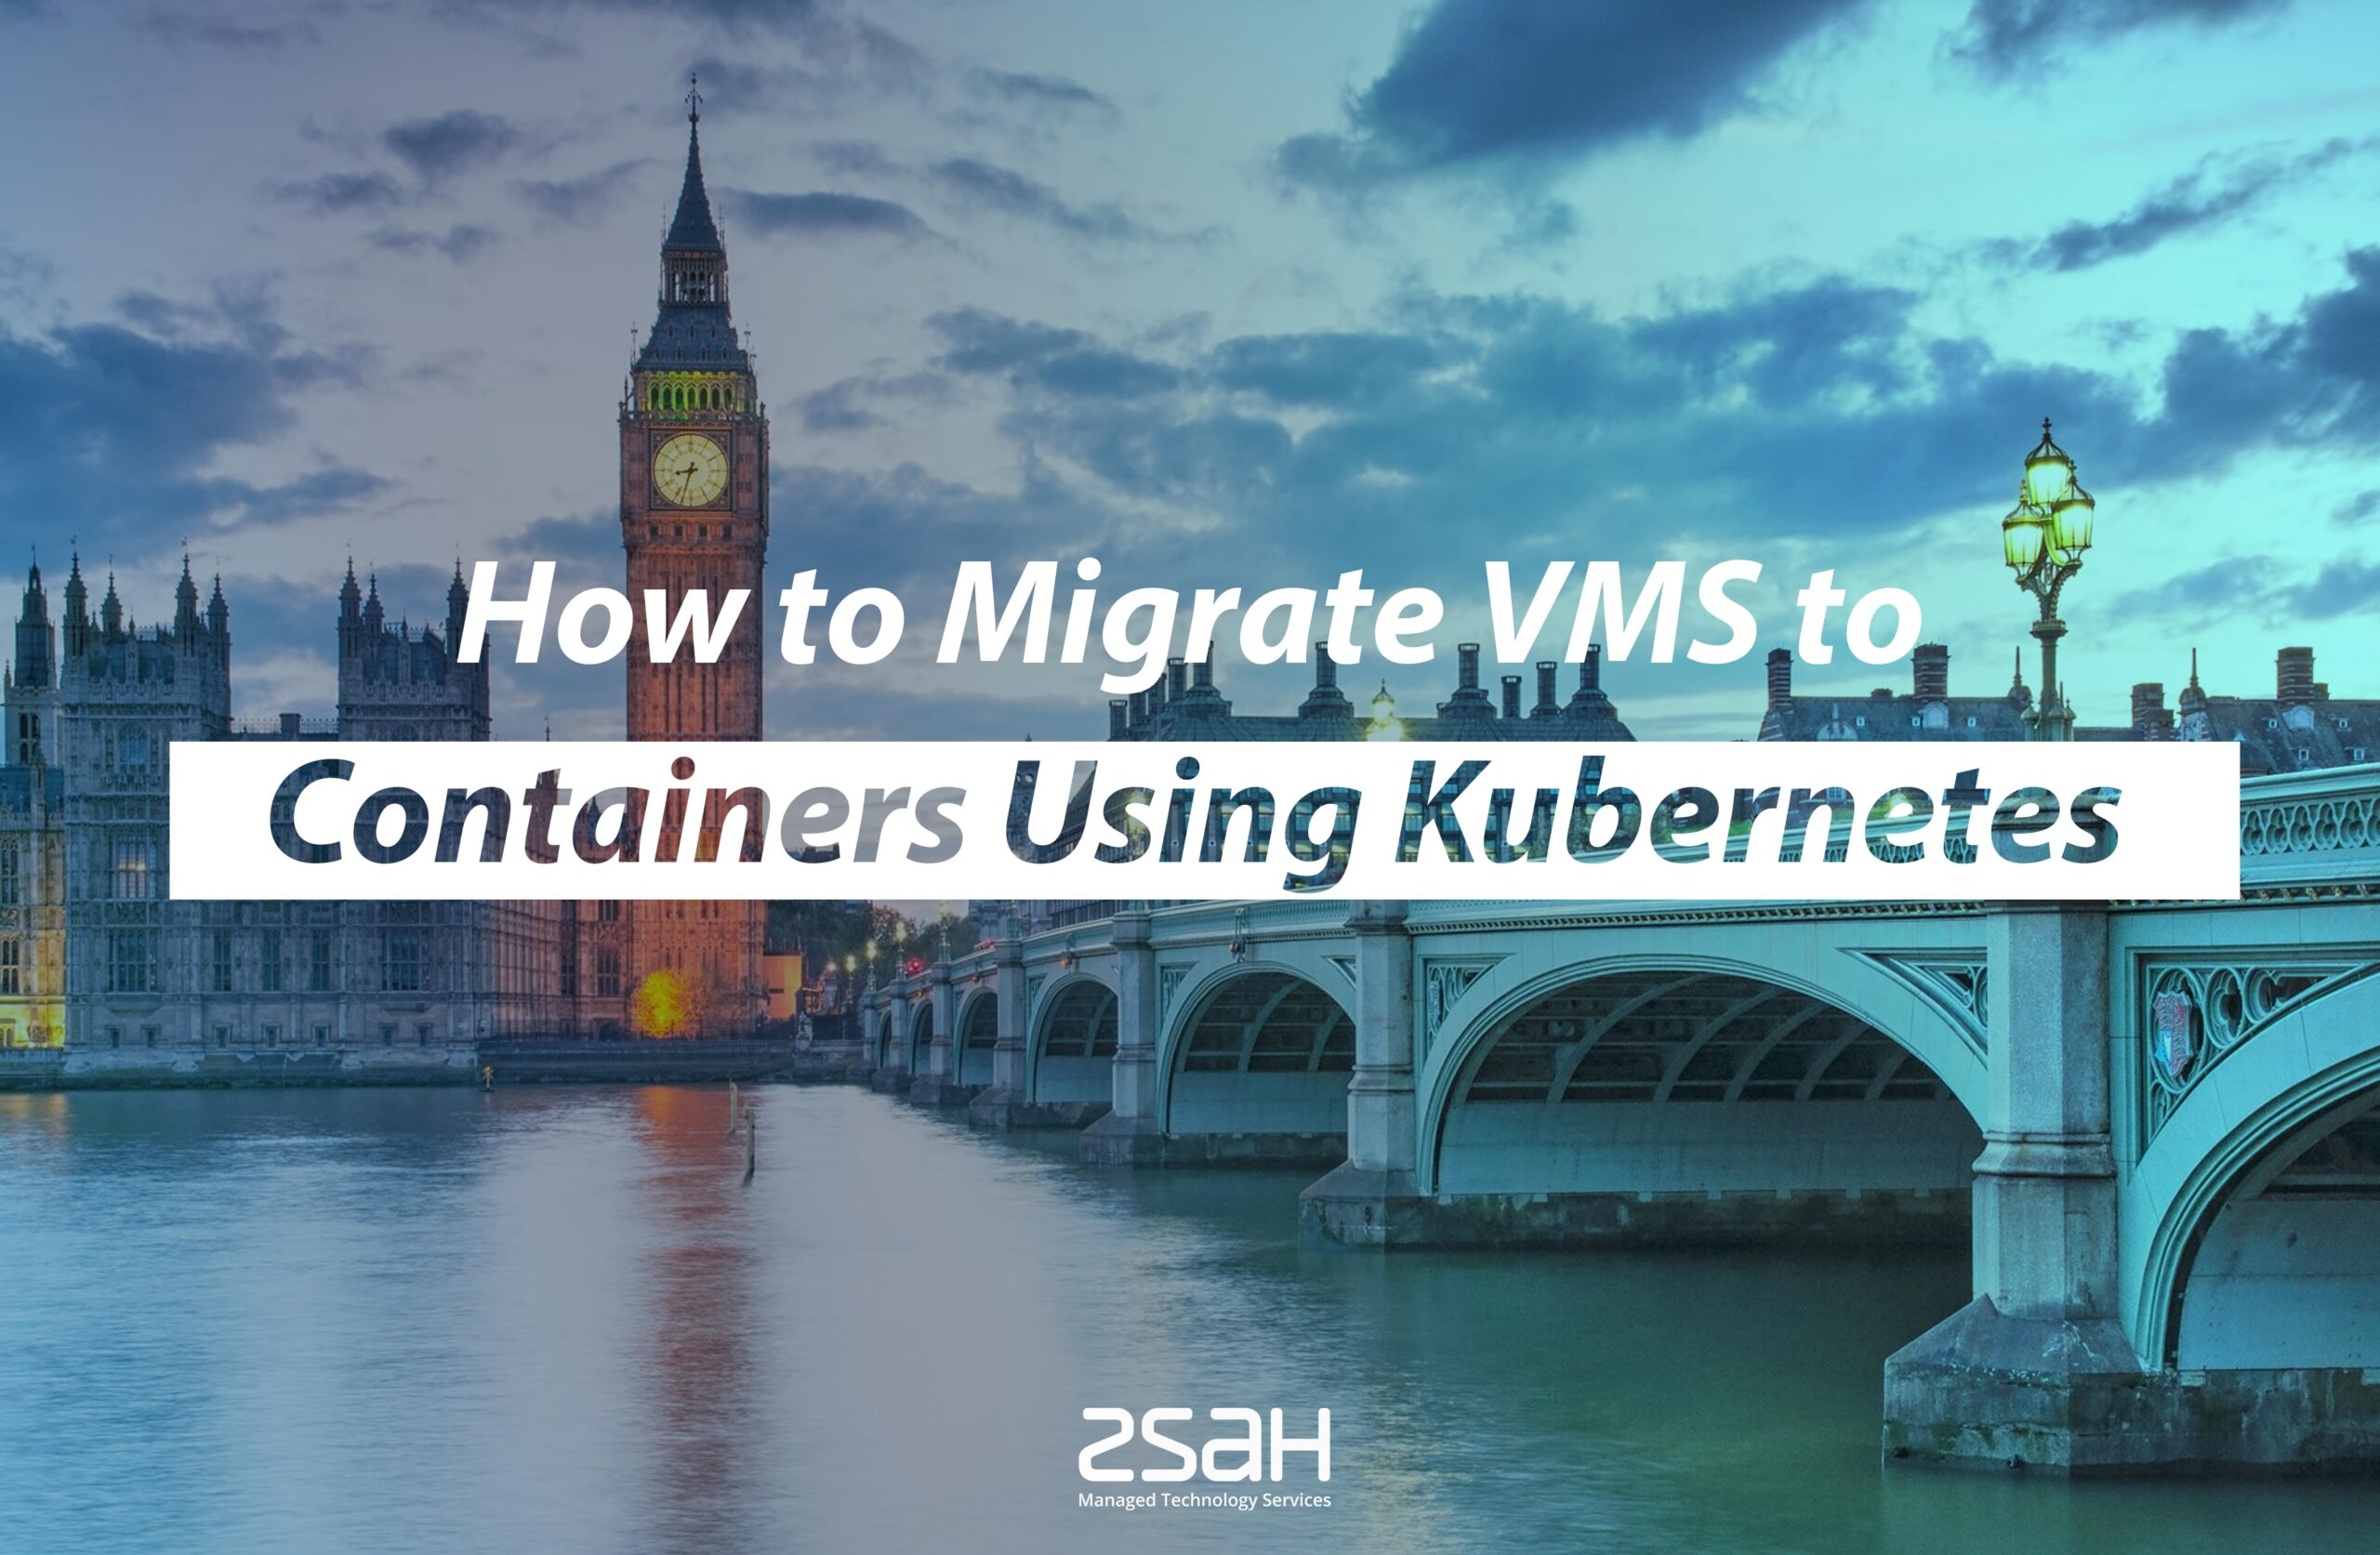 How to migrate VMS to container using kubernetes - zsah